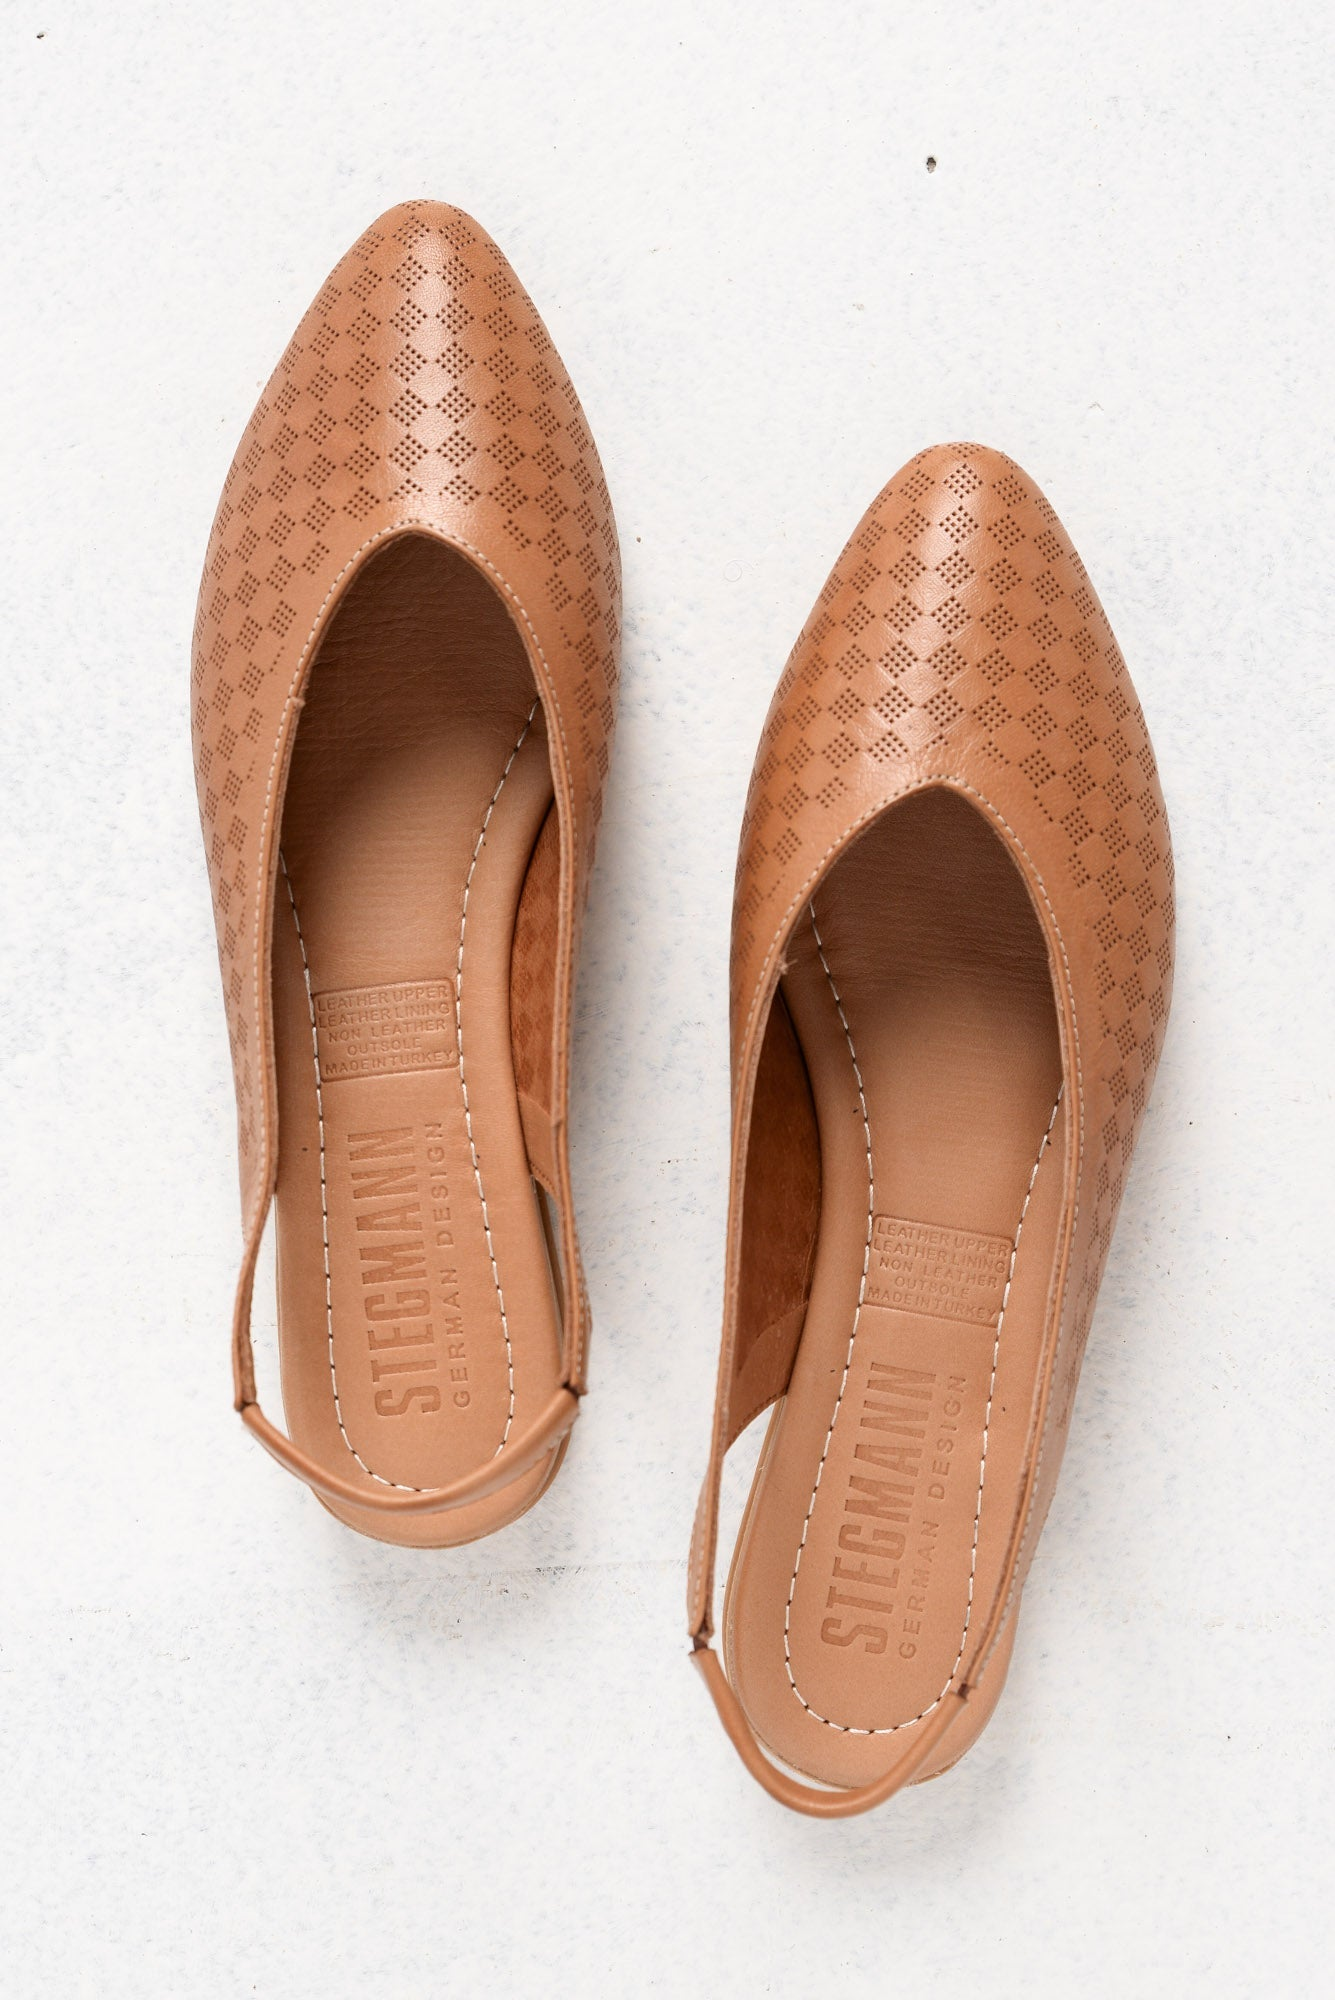 Aries Coconut Leather Slingback Shoe